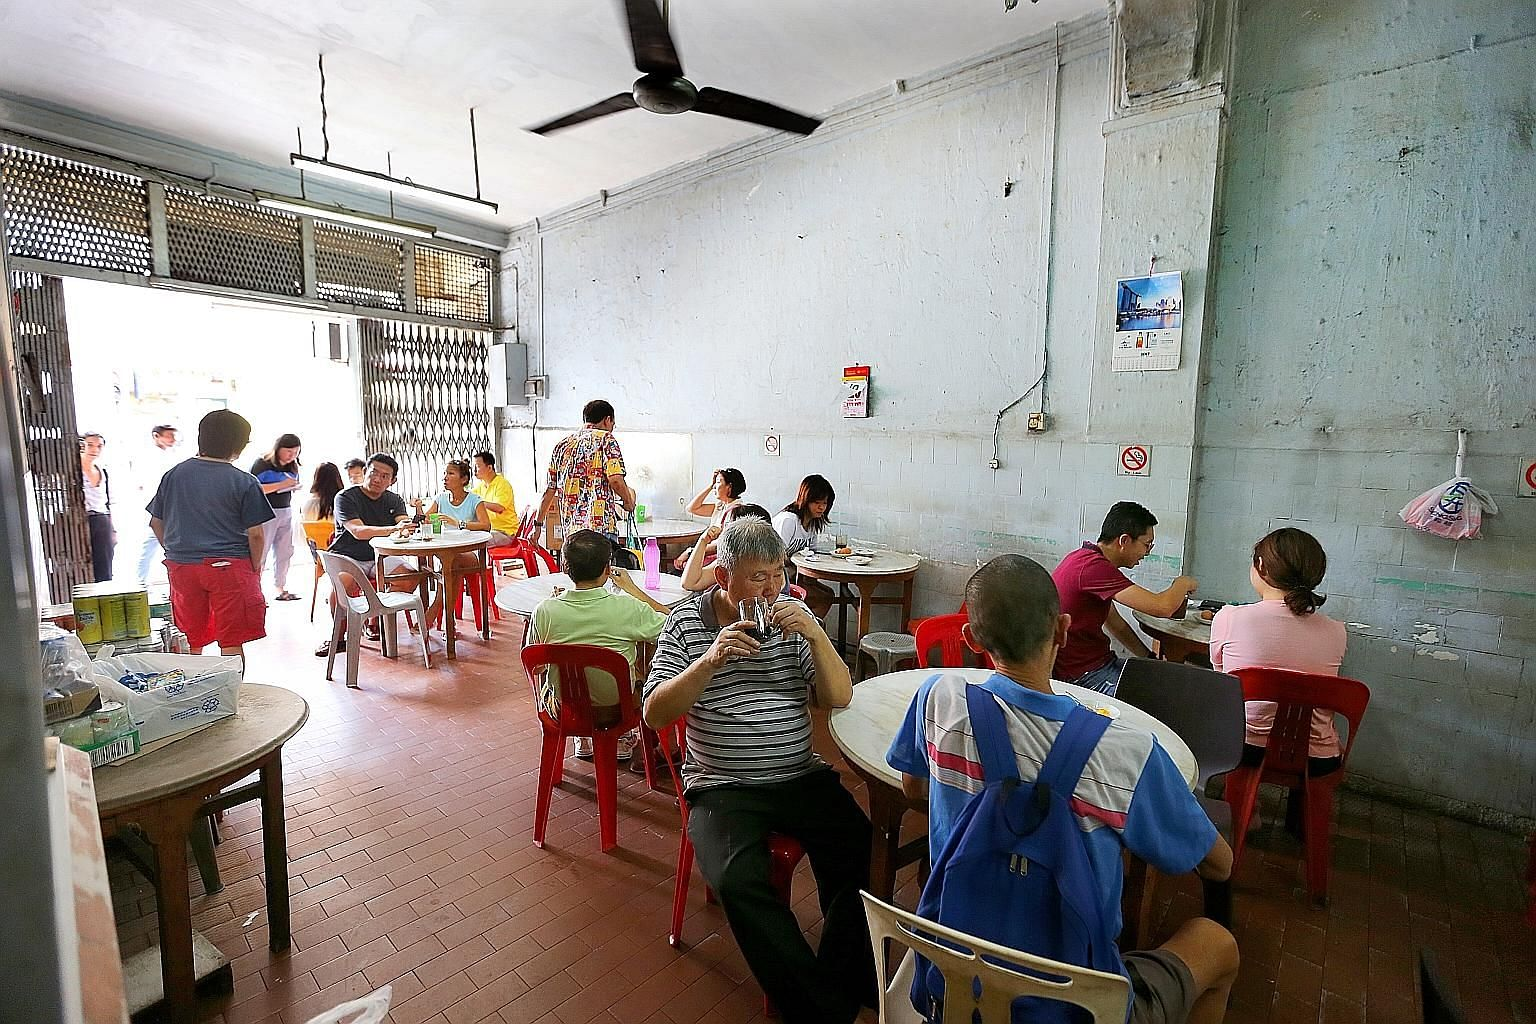 They came from as far as Jurong. Whether regular patrons or first-timers, customers have been streaming into Hup Lee since it was announced last week that the coffee shop would be closing for good. One of the last few old-school coffee shops in Singa